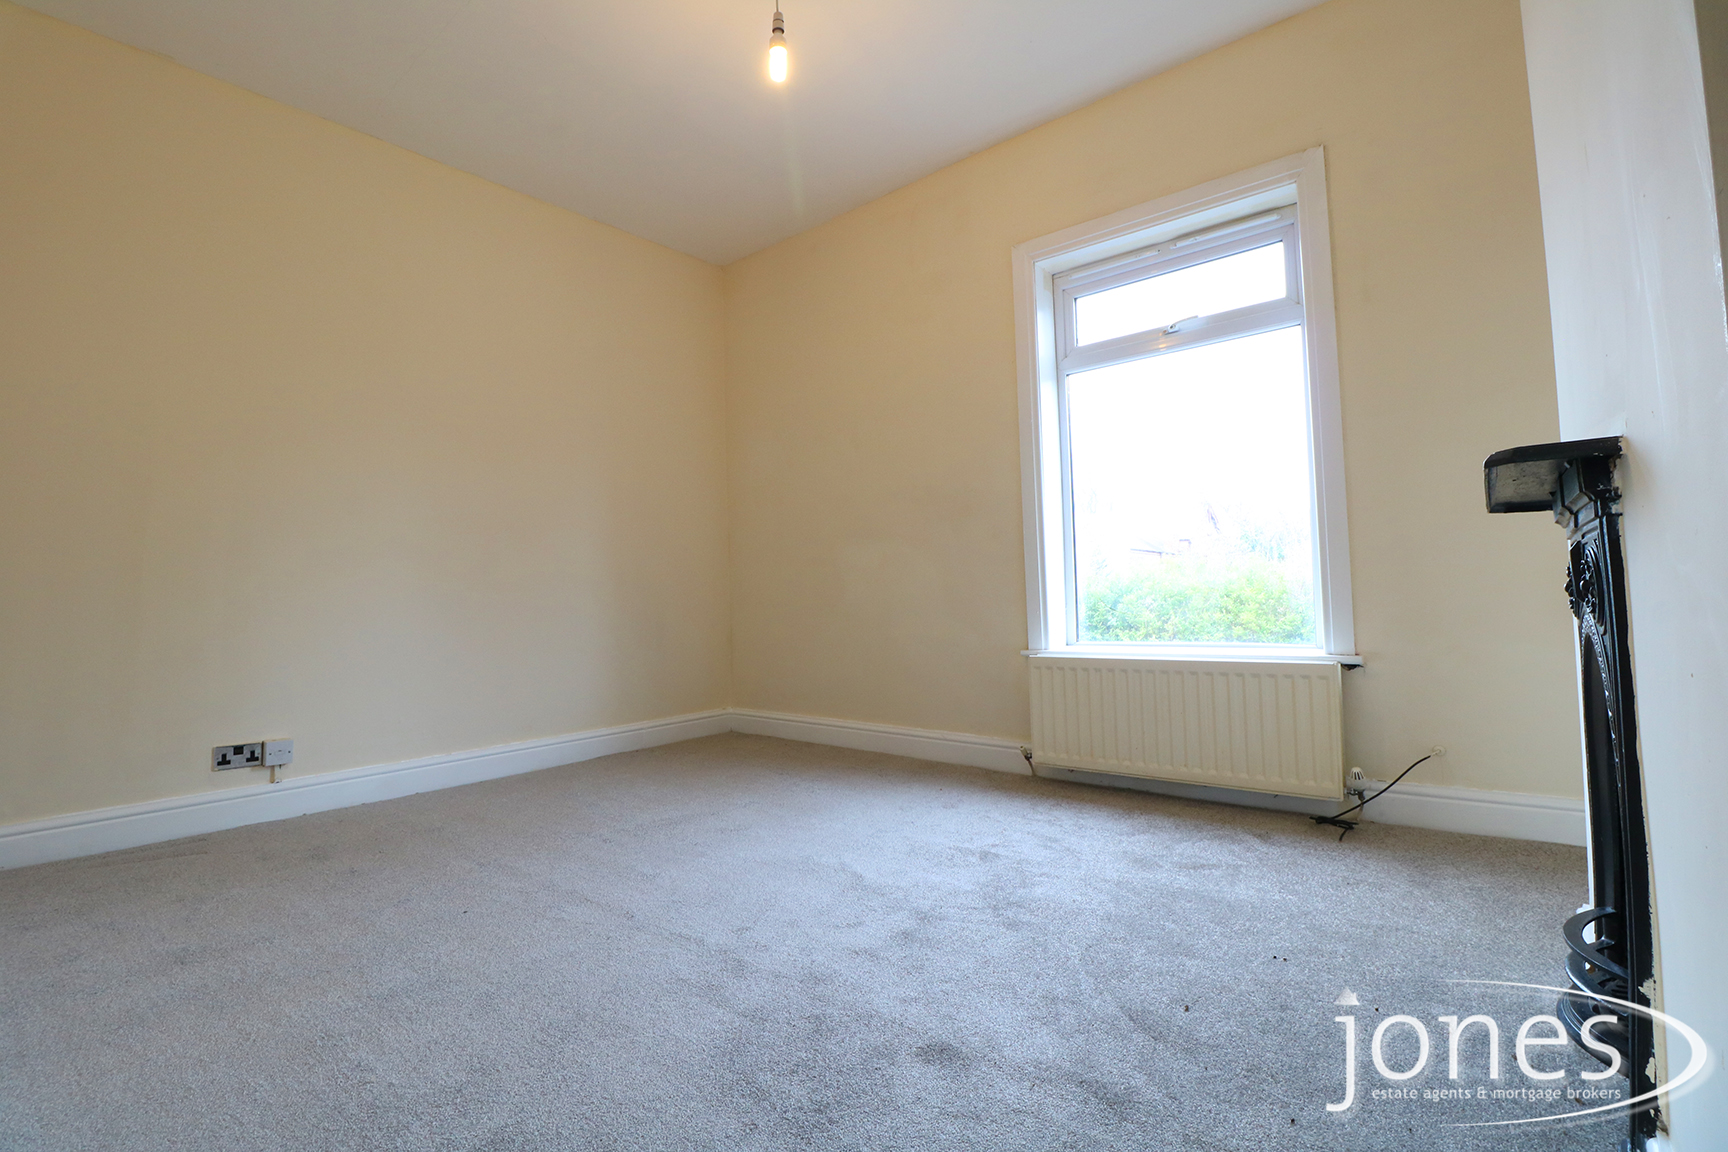 Home for Sale Let - Photo 05 Hallifield Street, Norton, Stockton on Tees, TS20 2HE